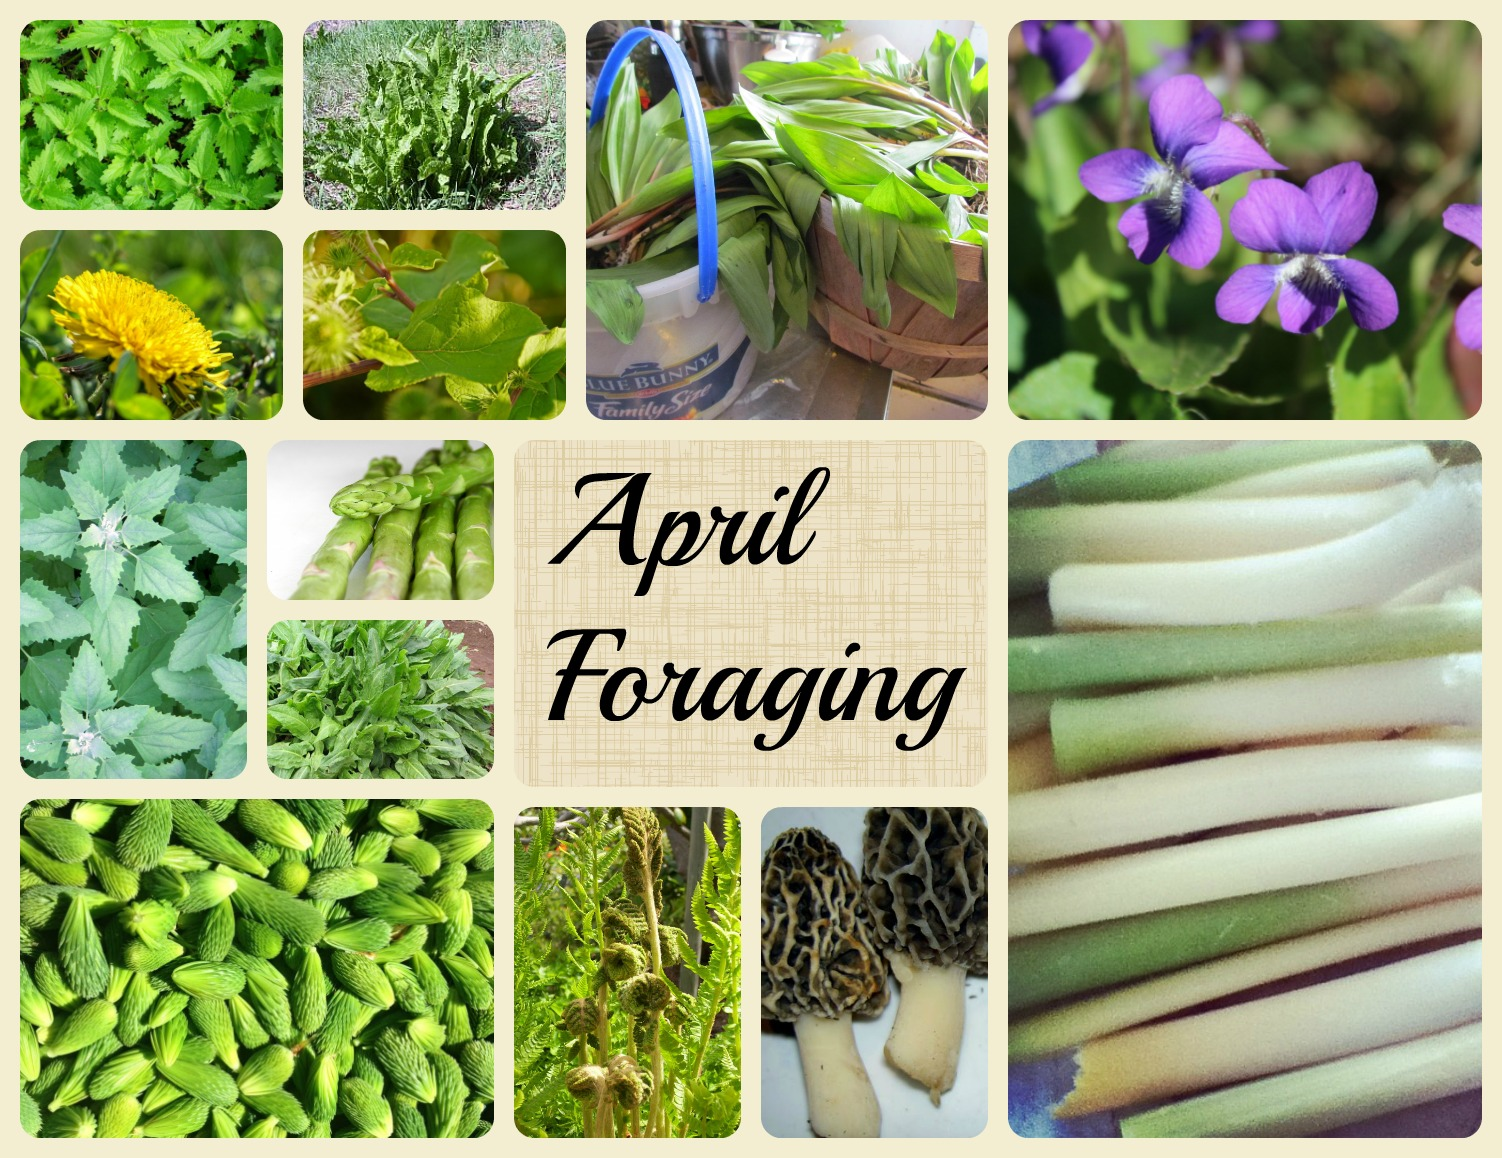 30 Wild Edible Foods to Forage in April